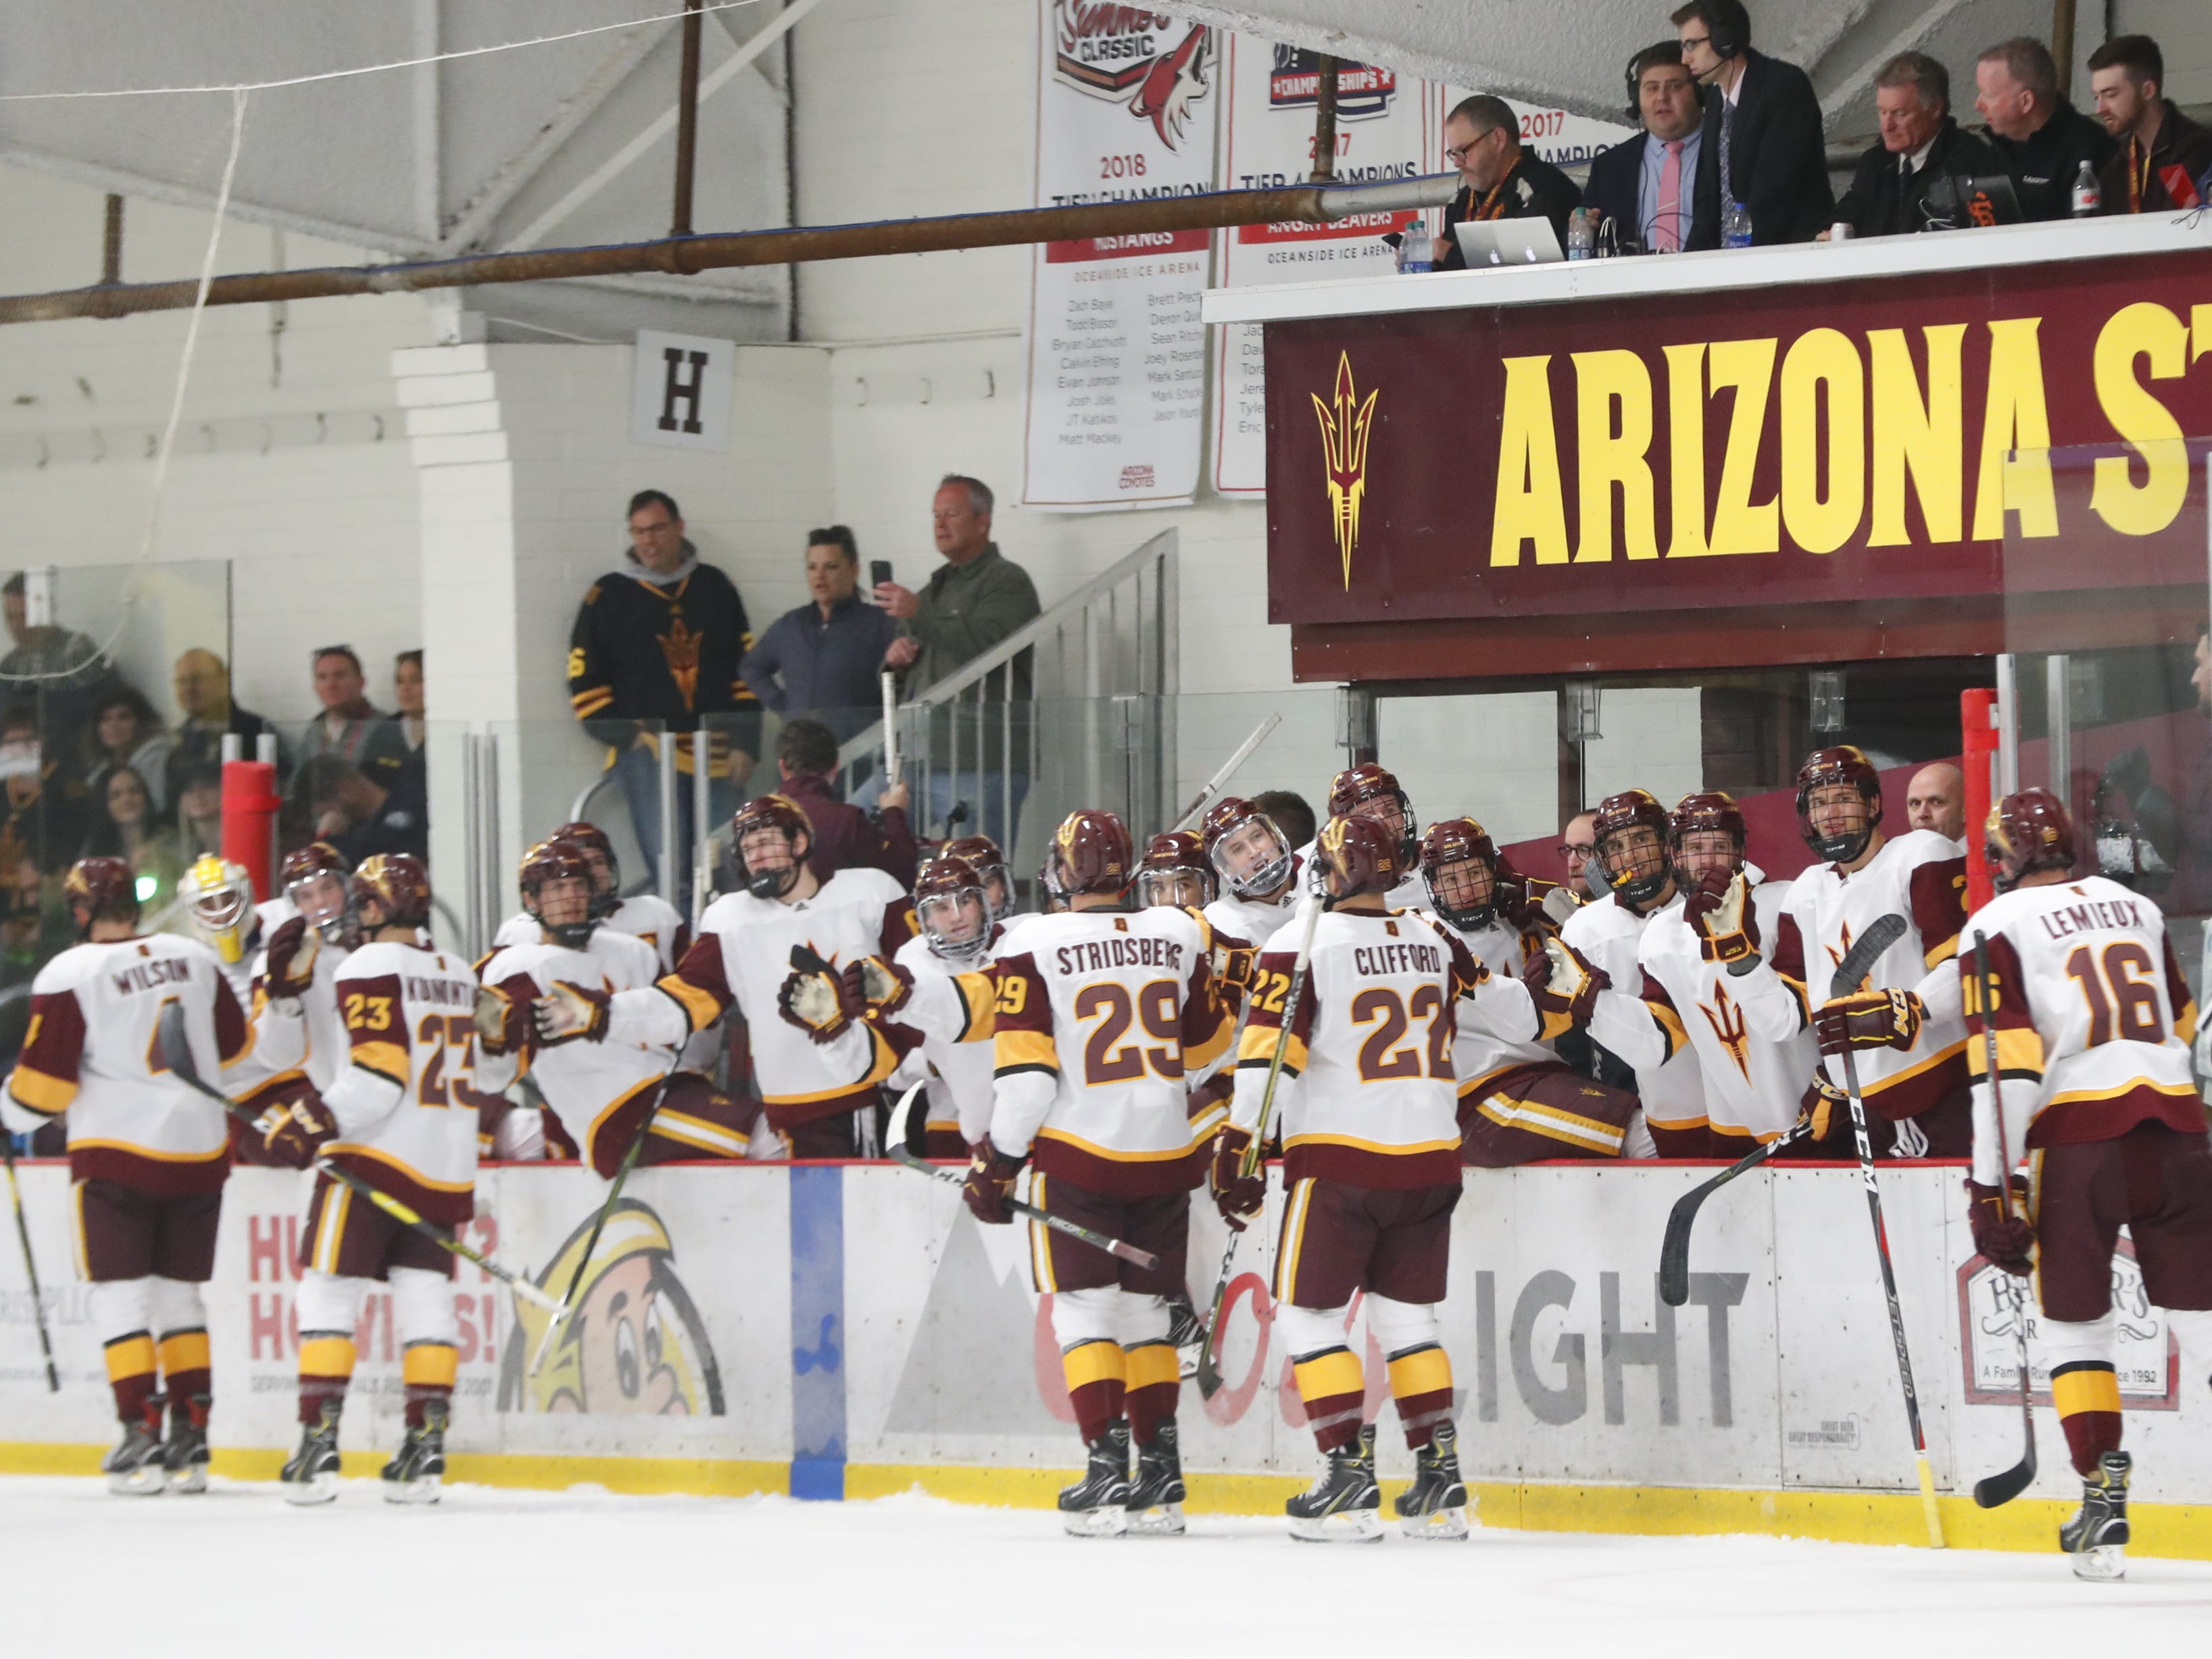 ASU celebrates a goal against Alaska at Oceanside Ice Arena in Tempe, Ariz. on October 7, 2018. FILE PHOTO